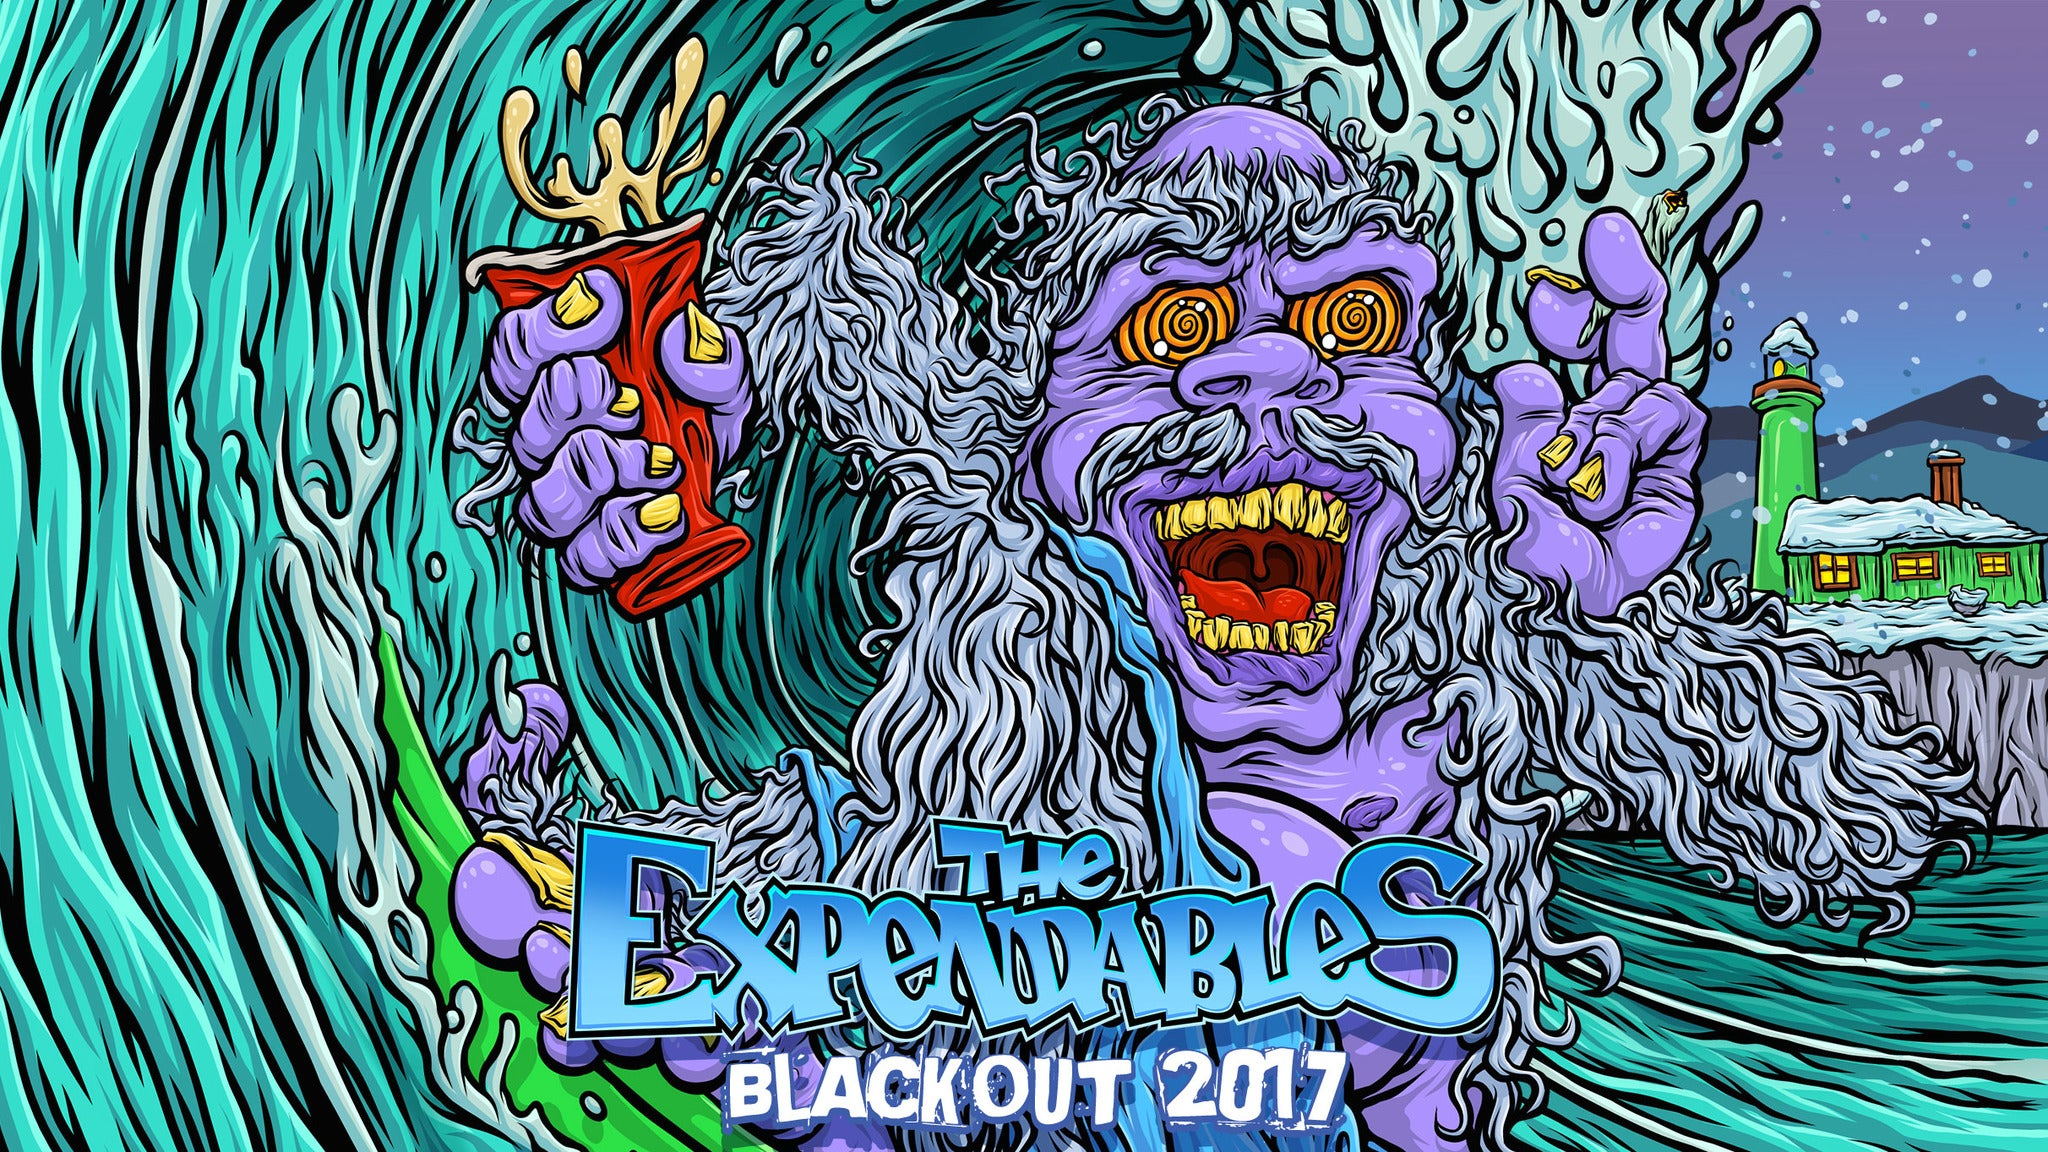 The Expendables: Blackout 2017 at Bottom Lounge